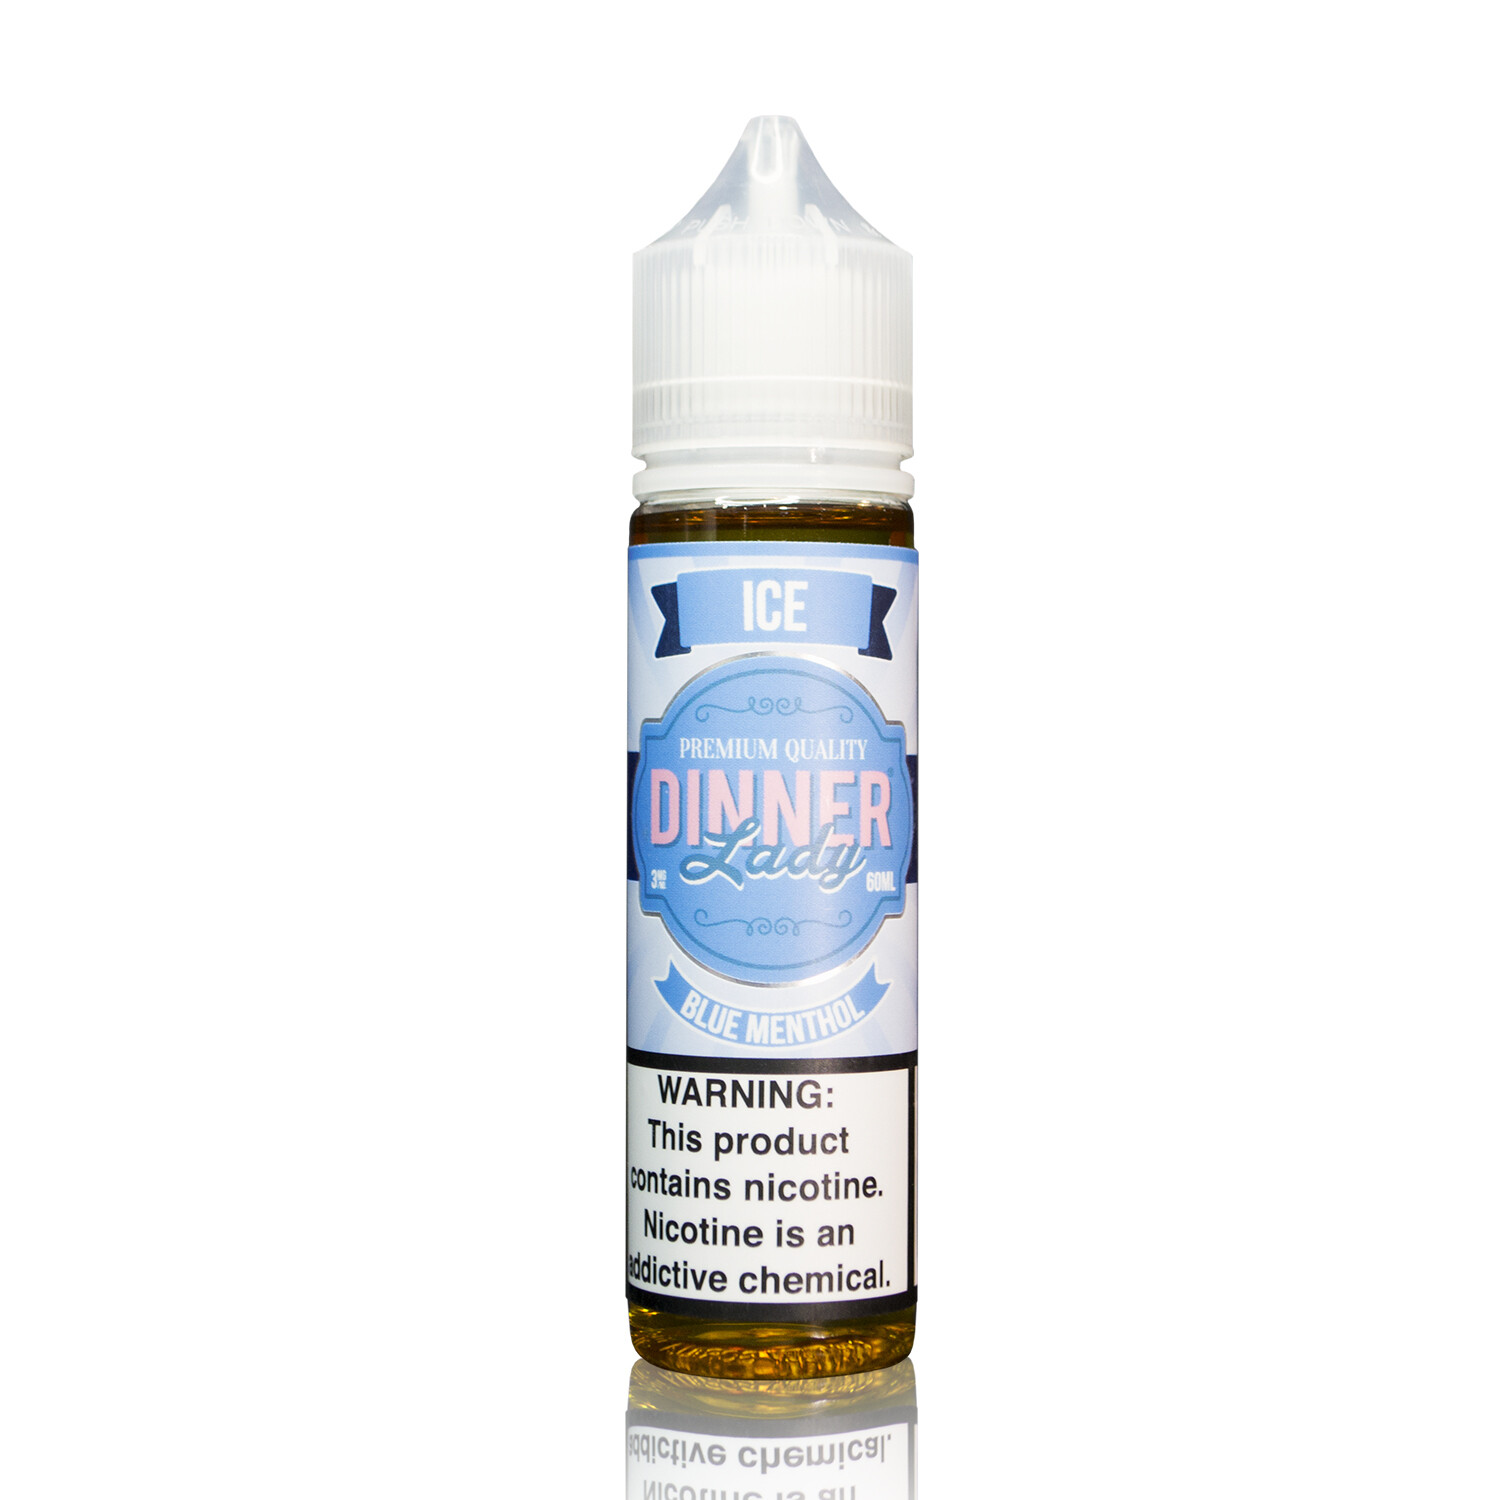 DINNER LADY ICE: BLUE MENTHOL 60ML 3MG